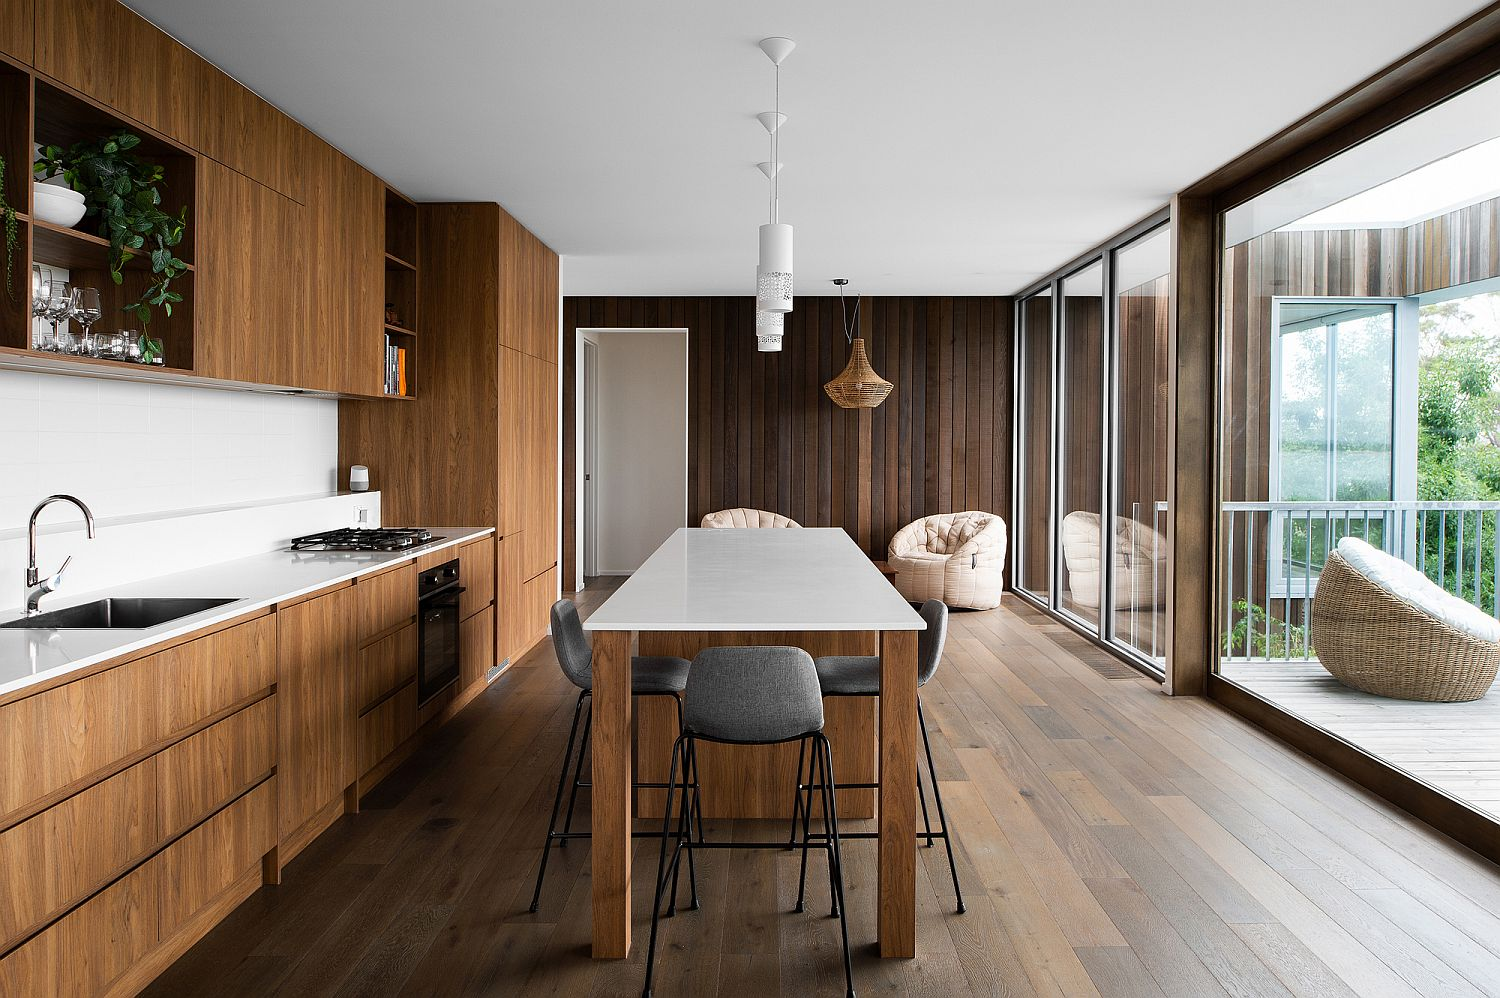 Wood-and-white-kitchen-with-sliding-glass-door-connecting-it-to-the-deck-outside